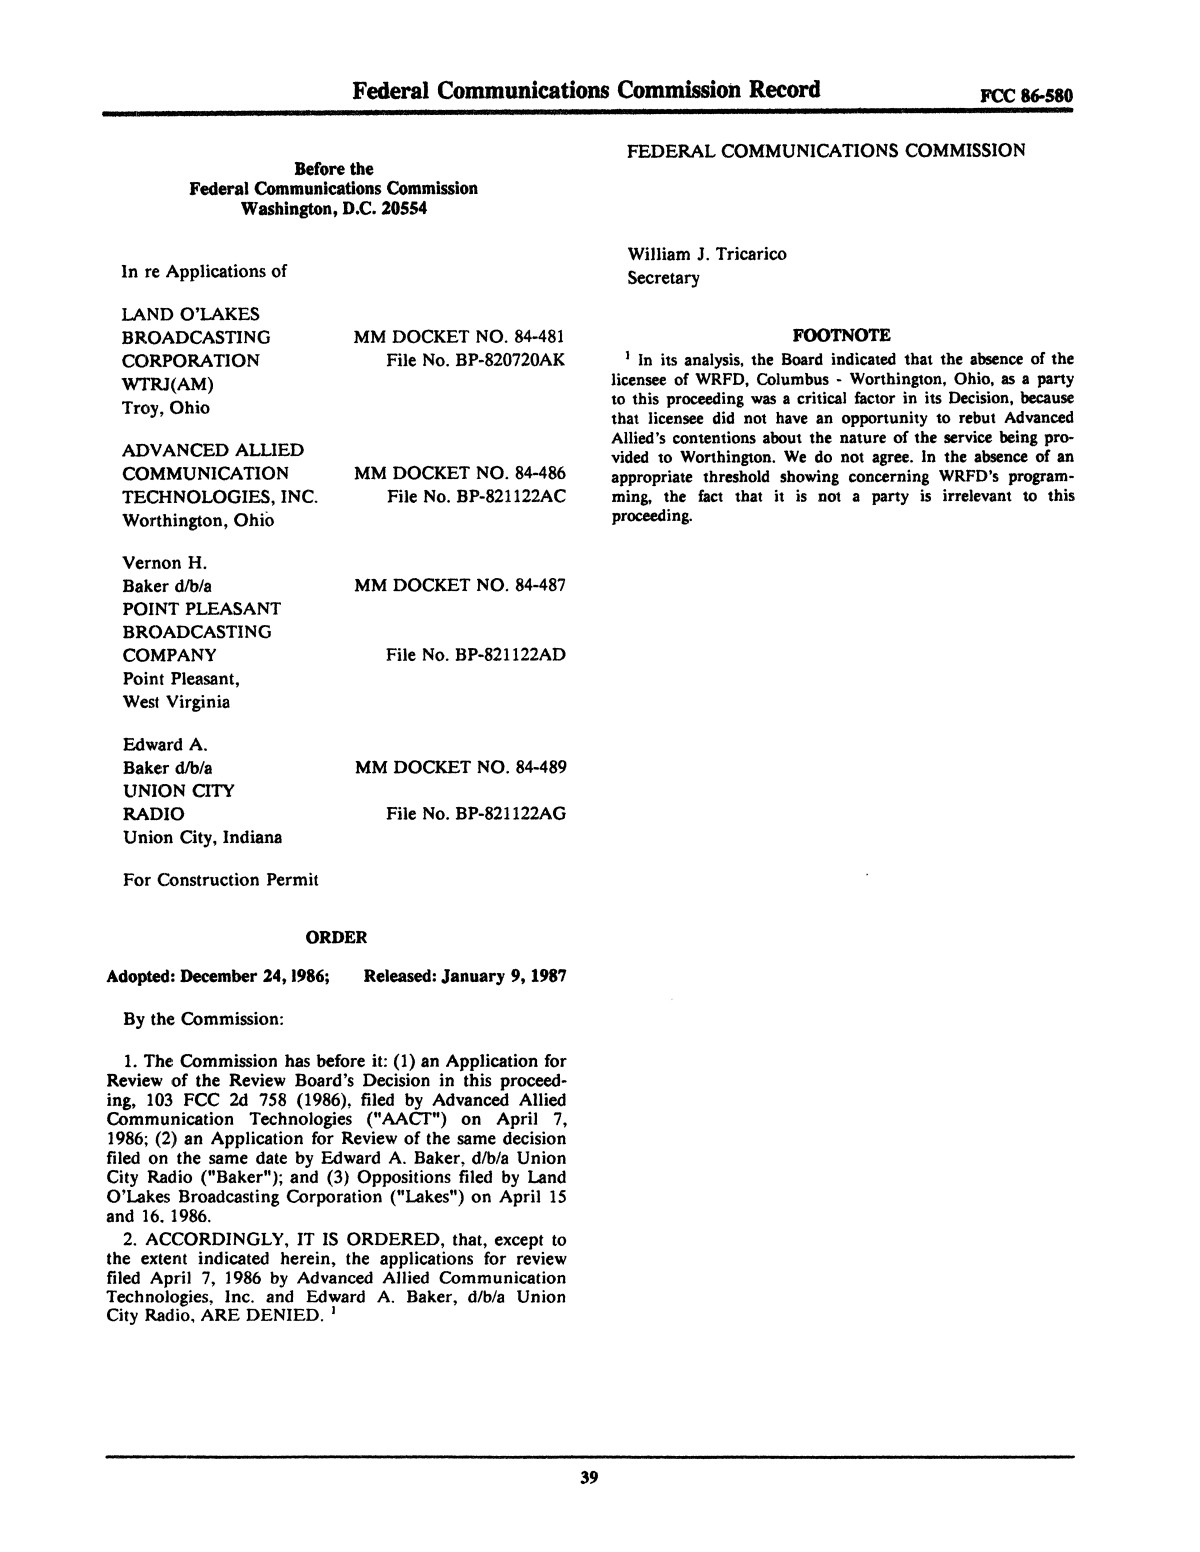 FCC Record, Volume 2, No. 1, Pages 1 to 409, January 5 - January 16, 1987                                                                                                      39